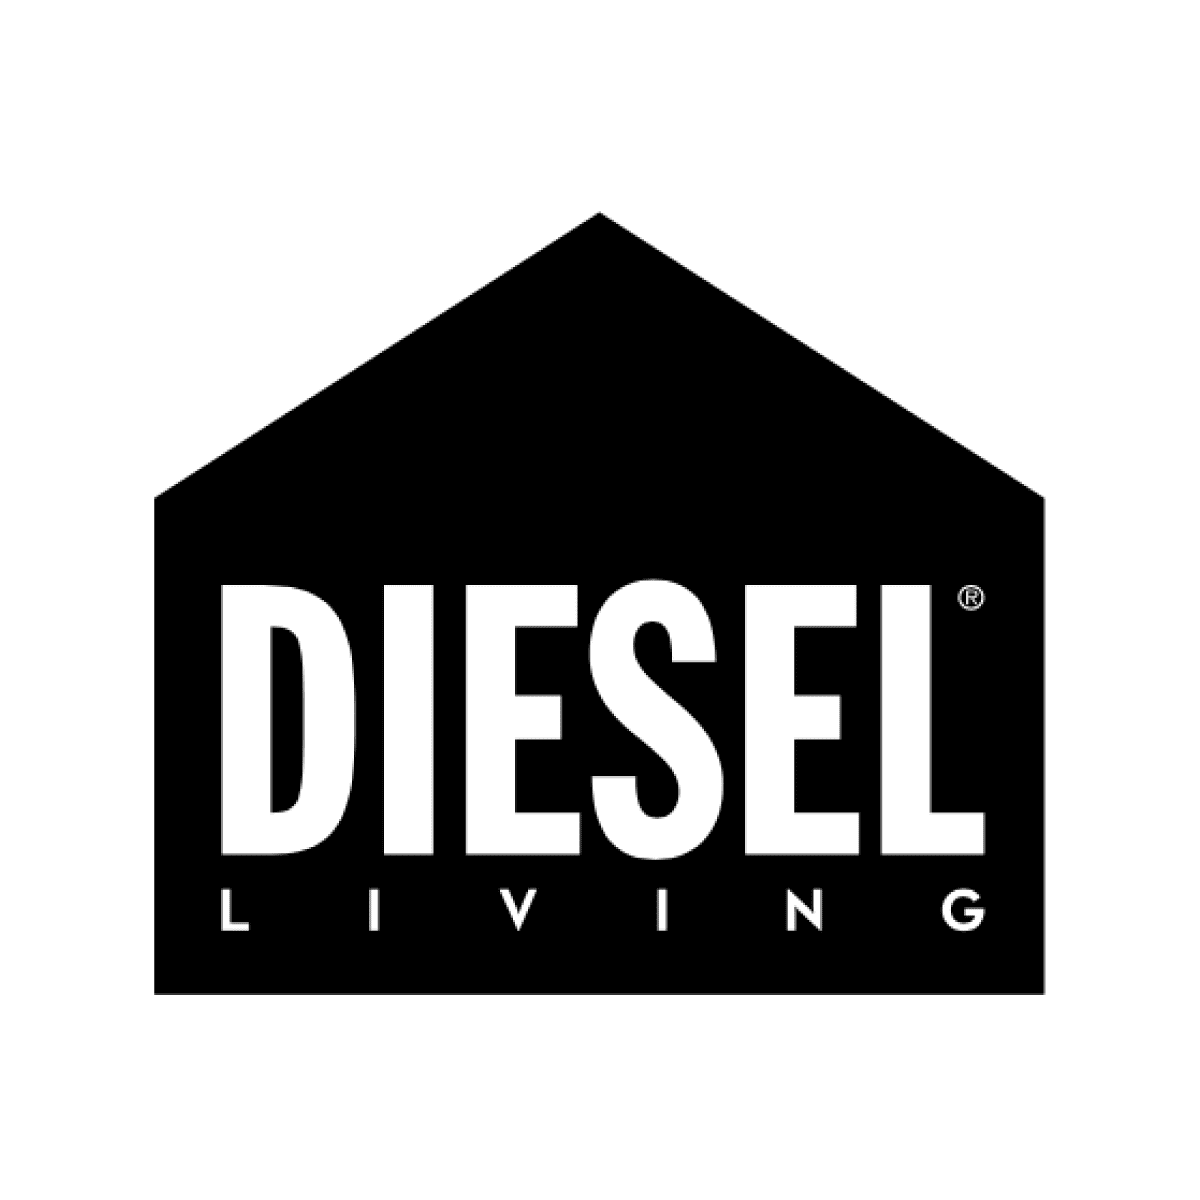 diesel-living-with-lodes-logo-uno